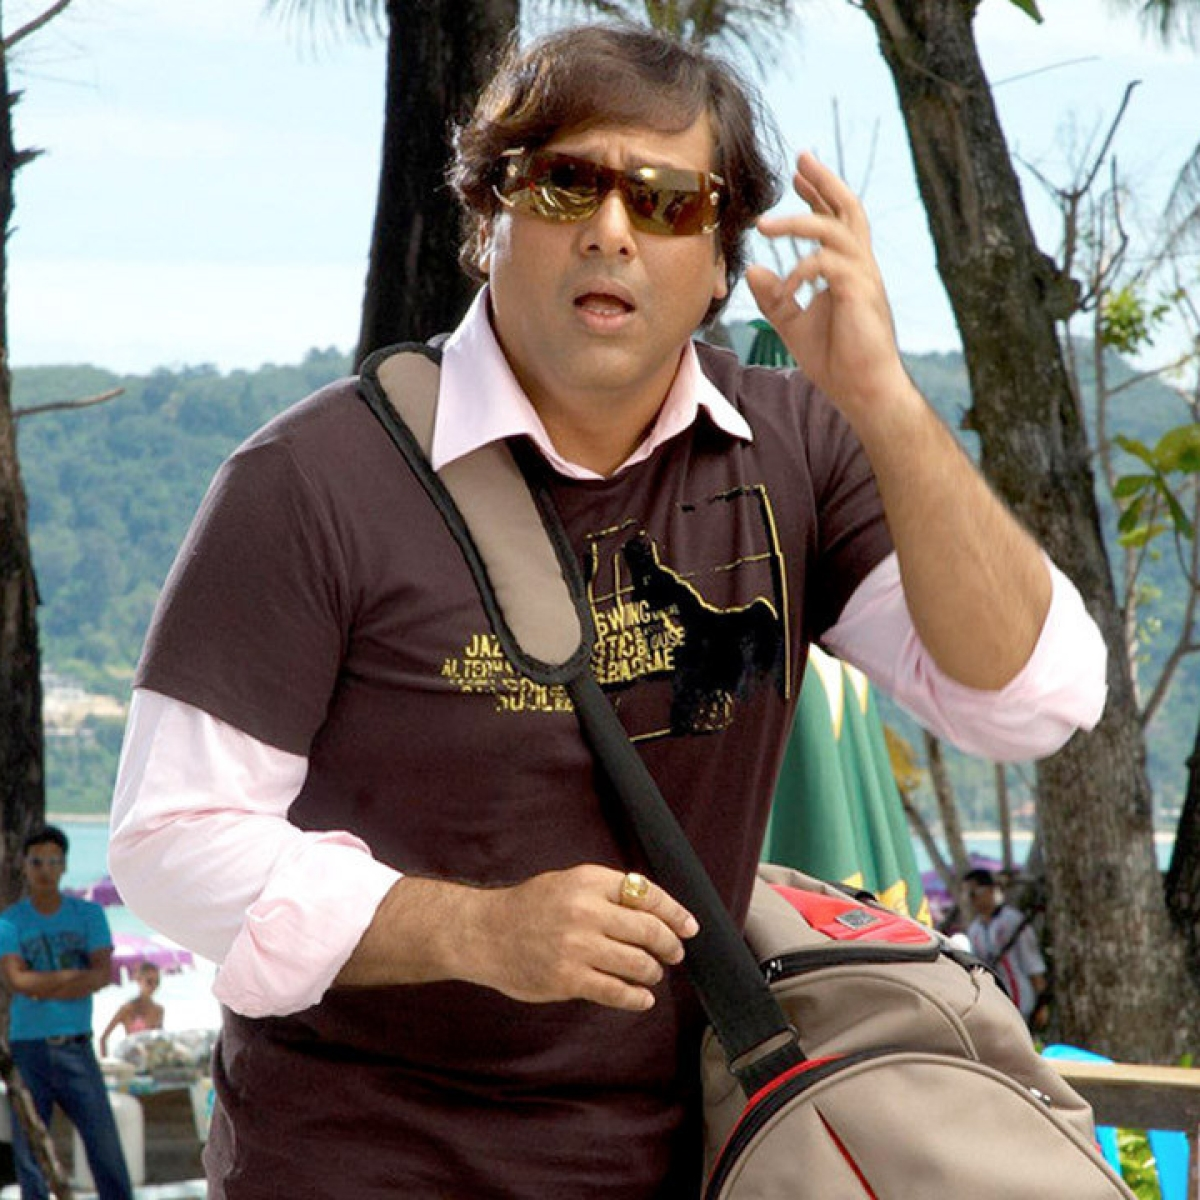 Govinda Birthday Special: As the 'comedy king' turns 57, here are some hilarious scenes from his films